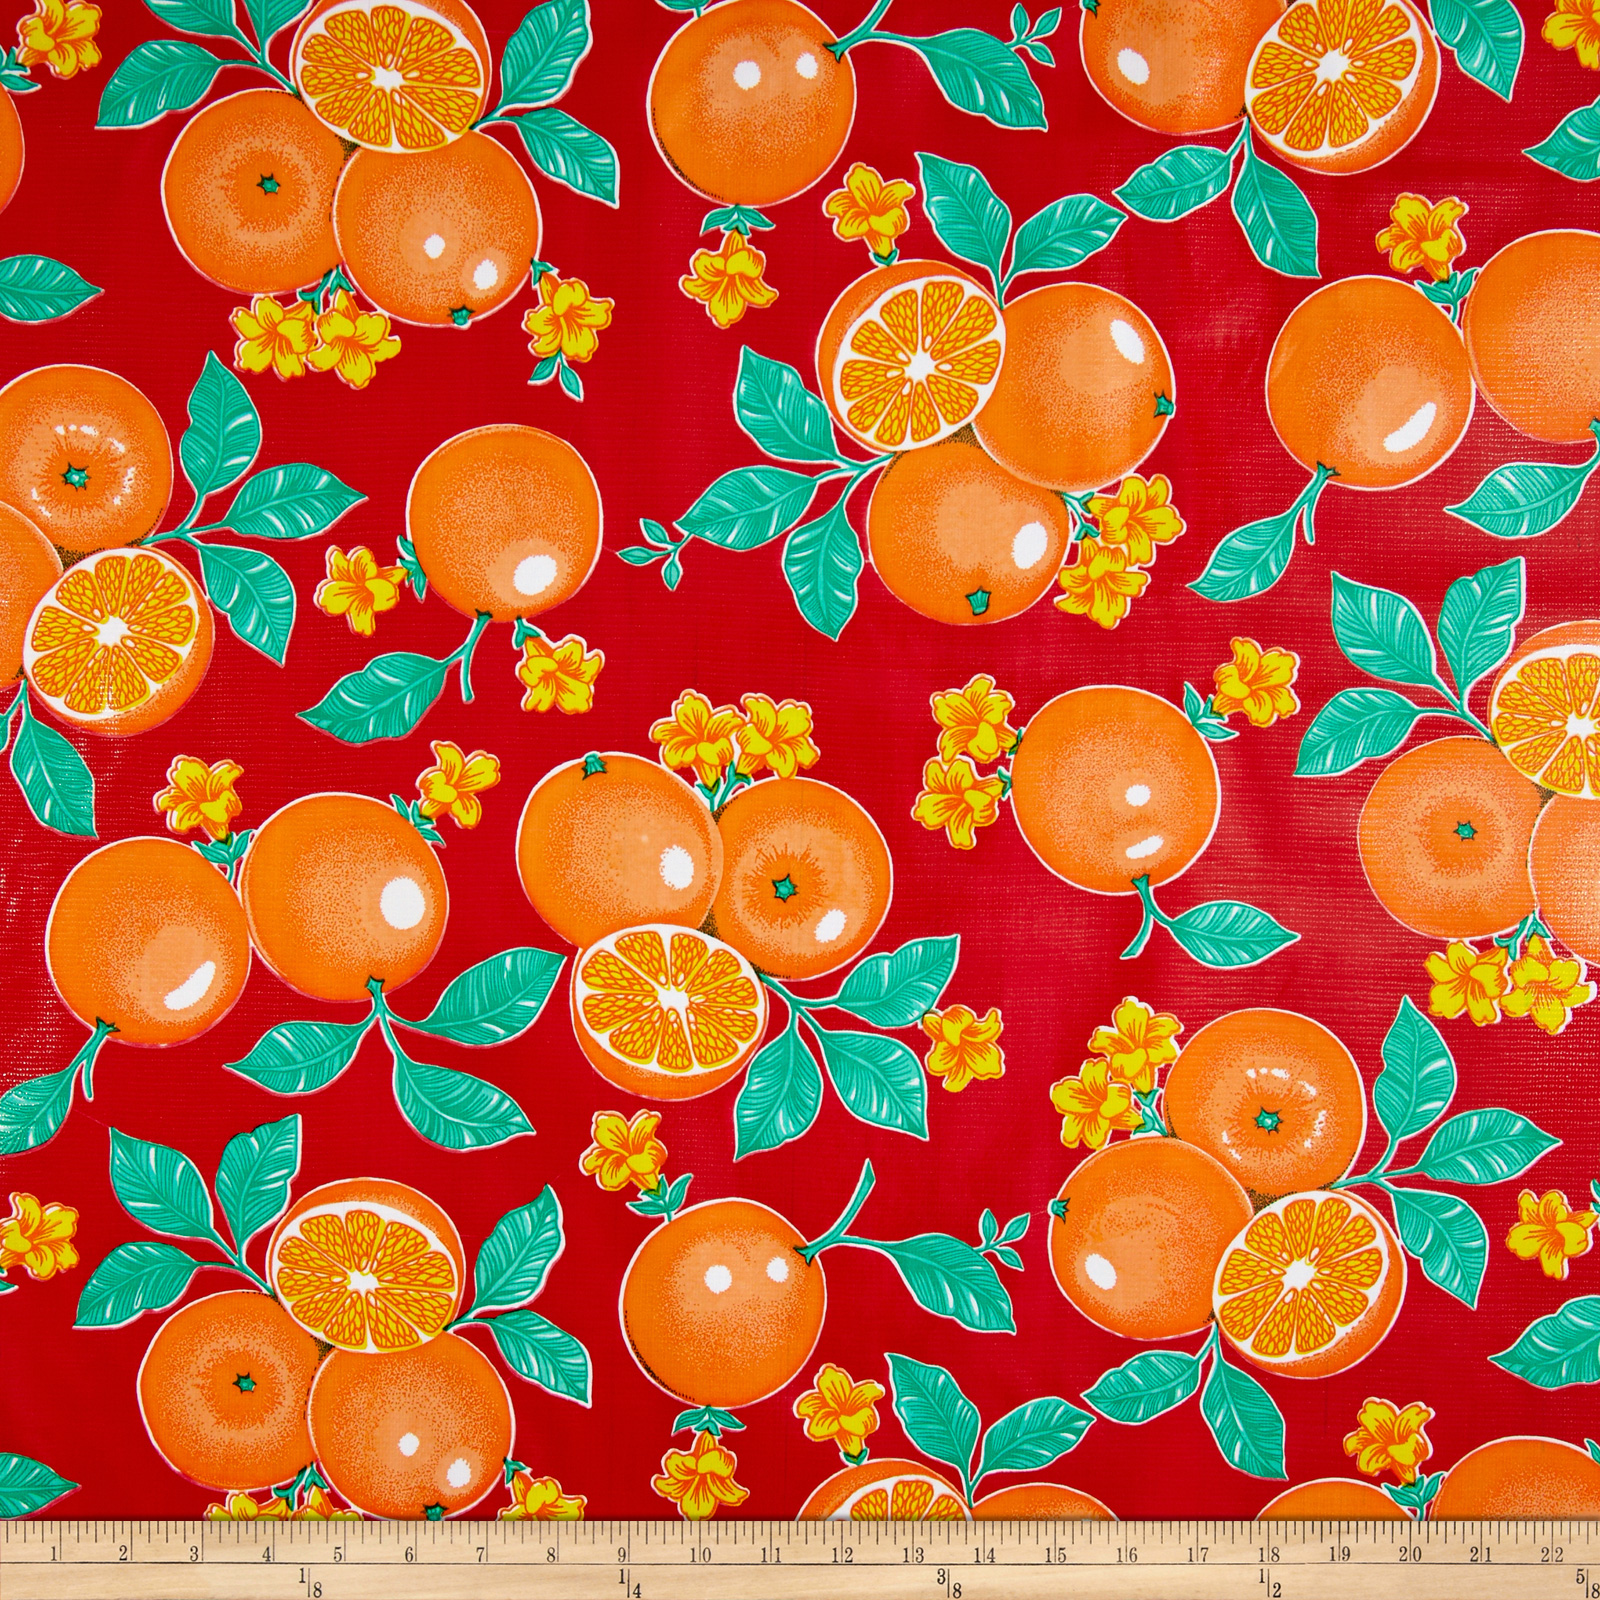 Oilcloth Oranges Red Fabric by Oilcloth International in USA